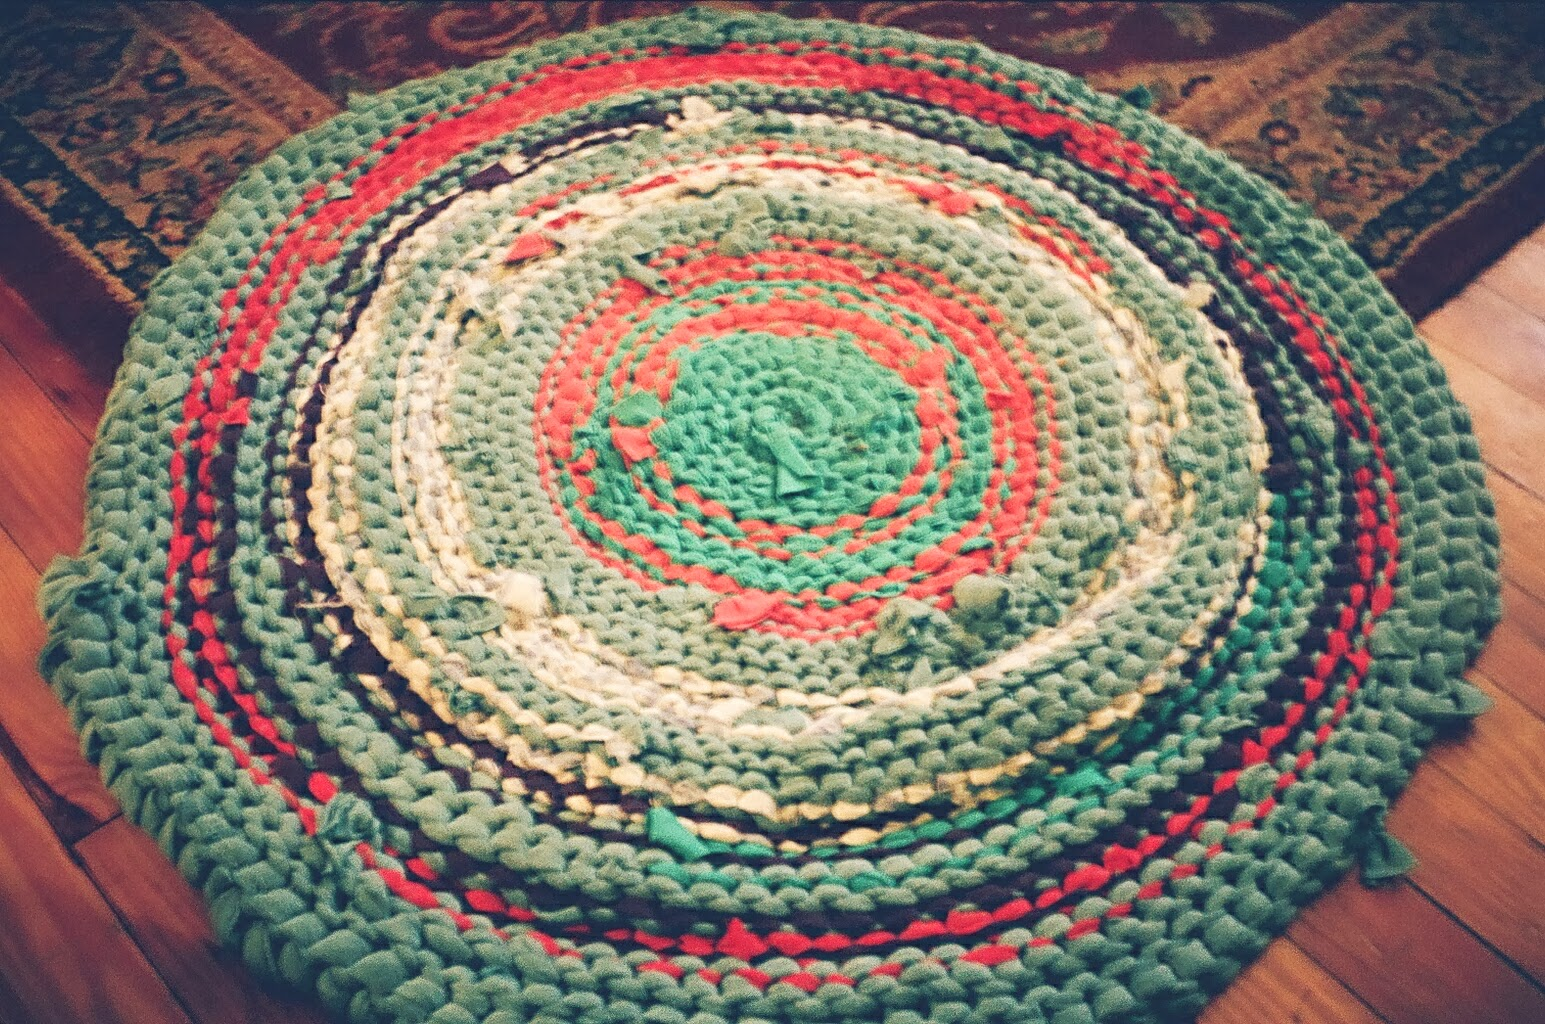 Crocheting Rugs : Rug+Crochet+Hook Tuesday, December 3, 2013